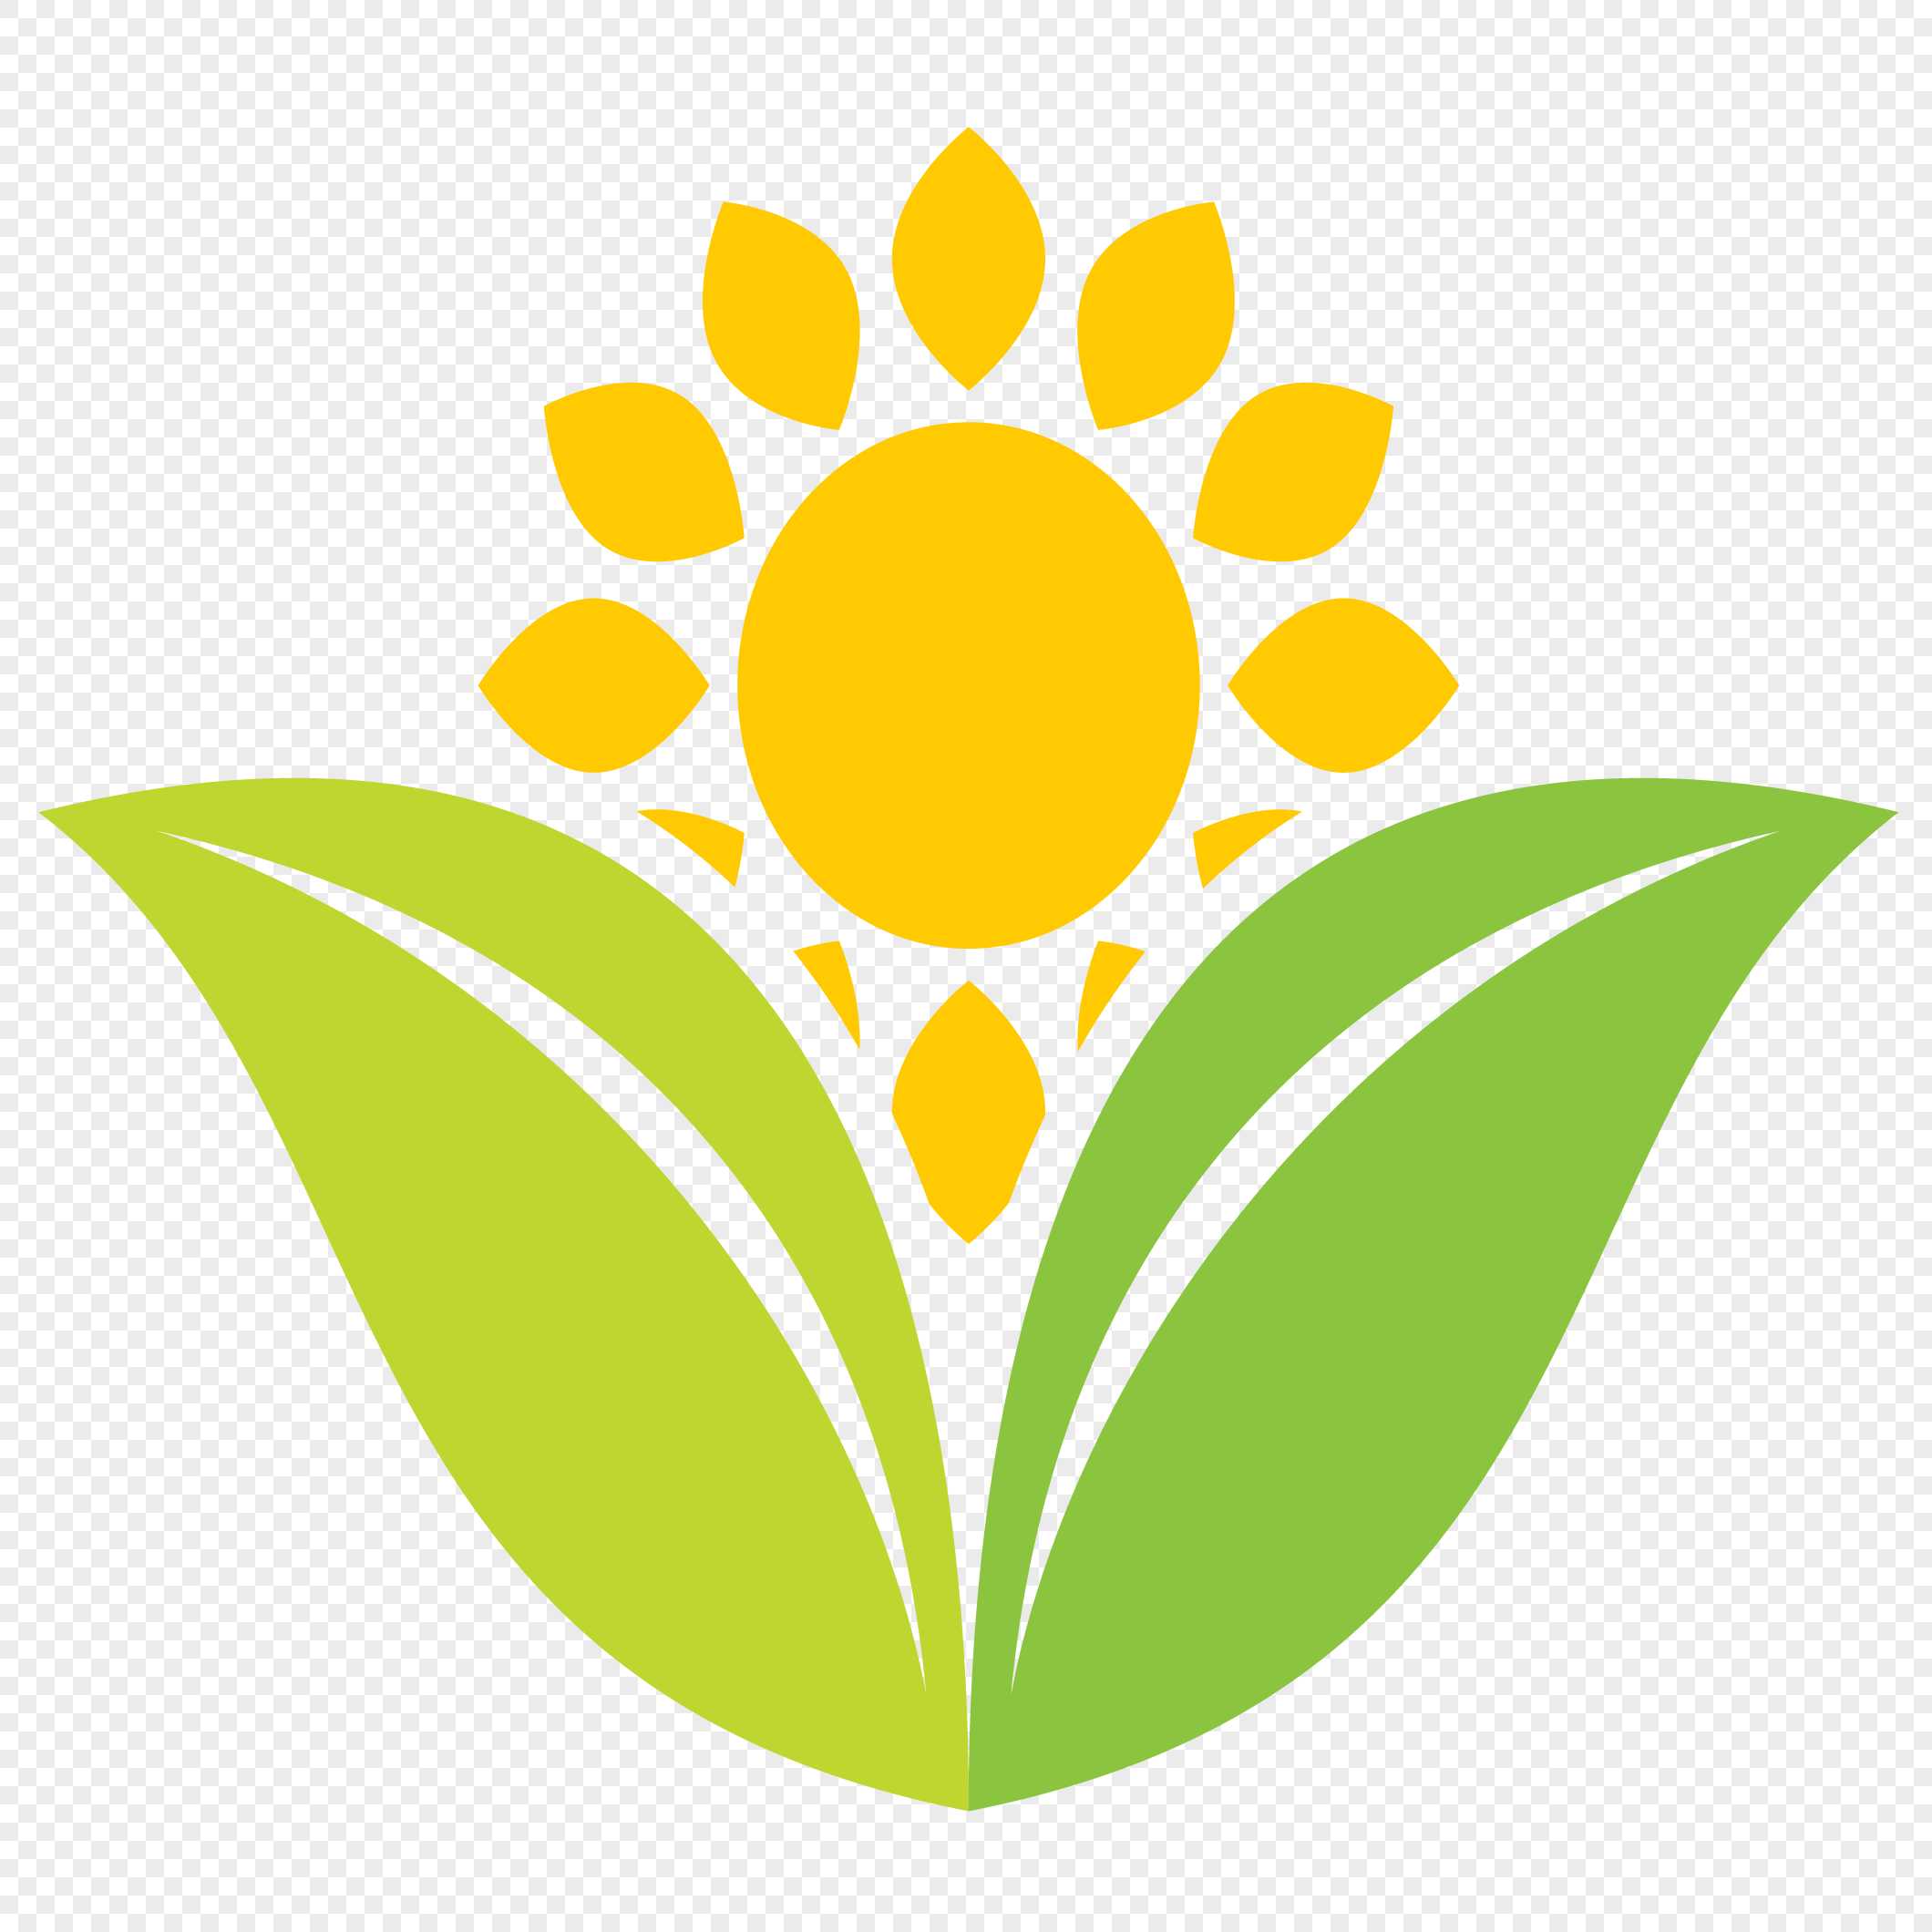 Flower Icon Png Imagepicture Free Download 400727845lovepik